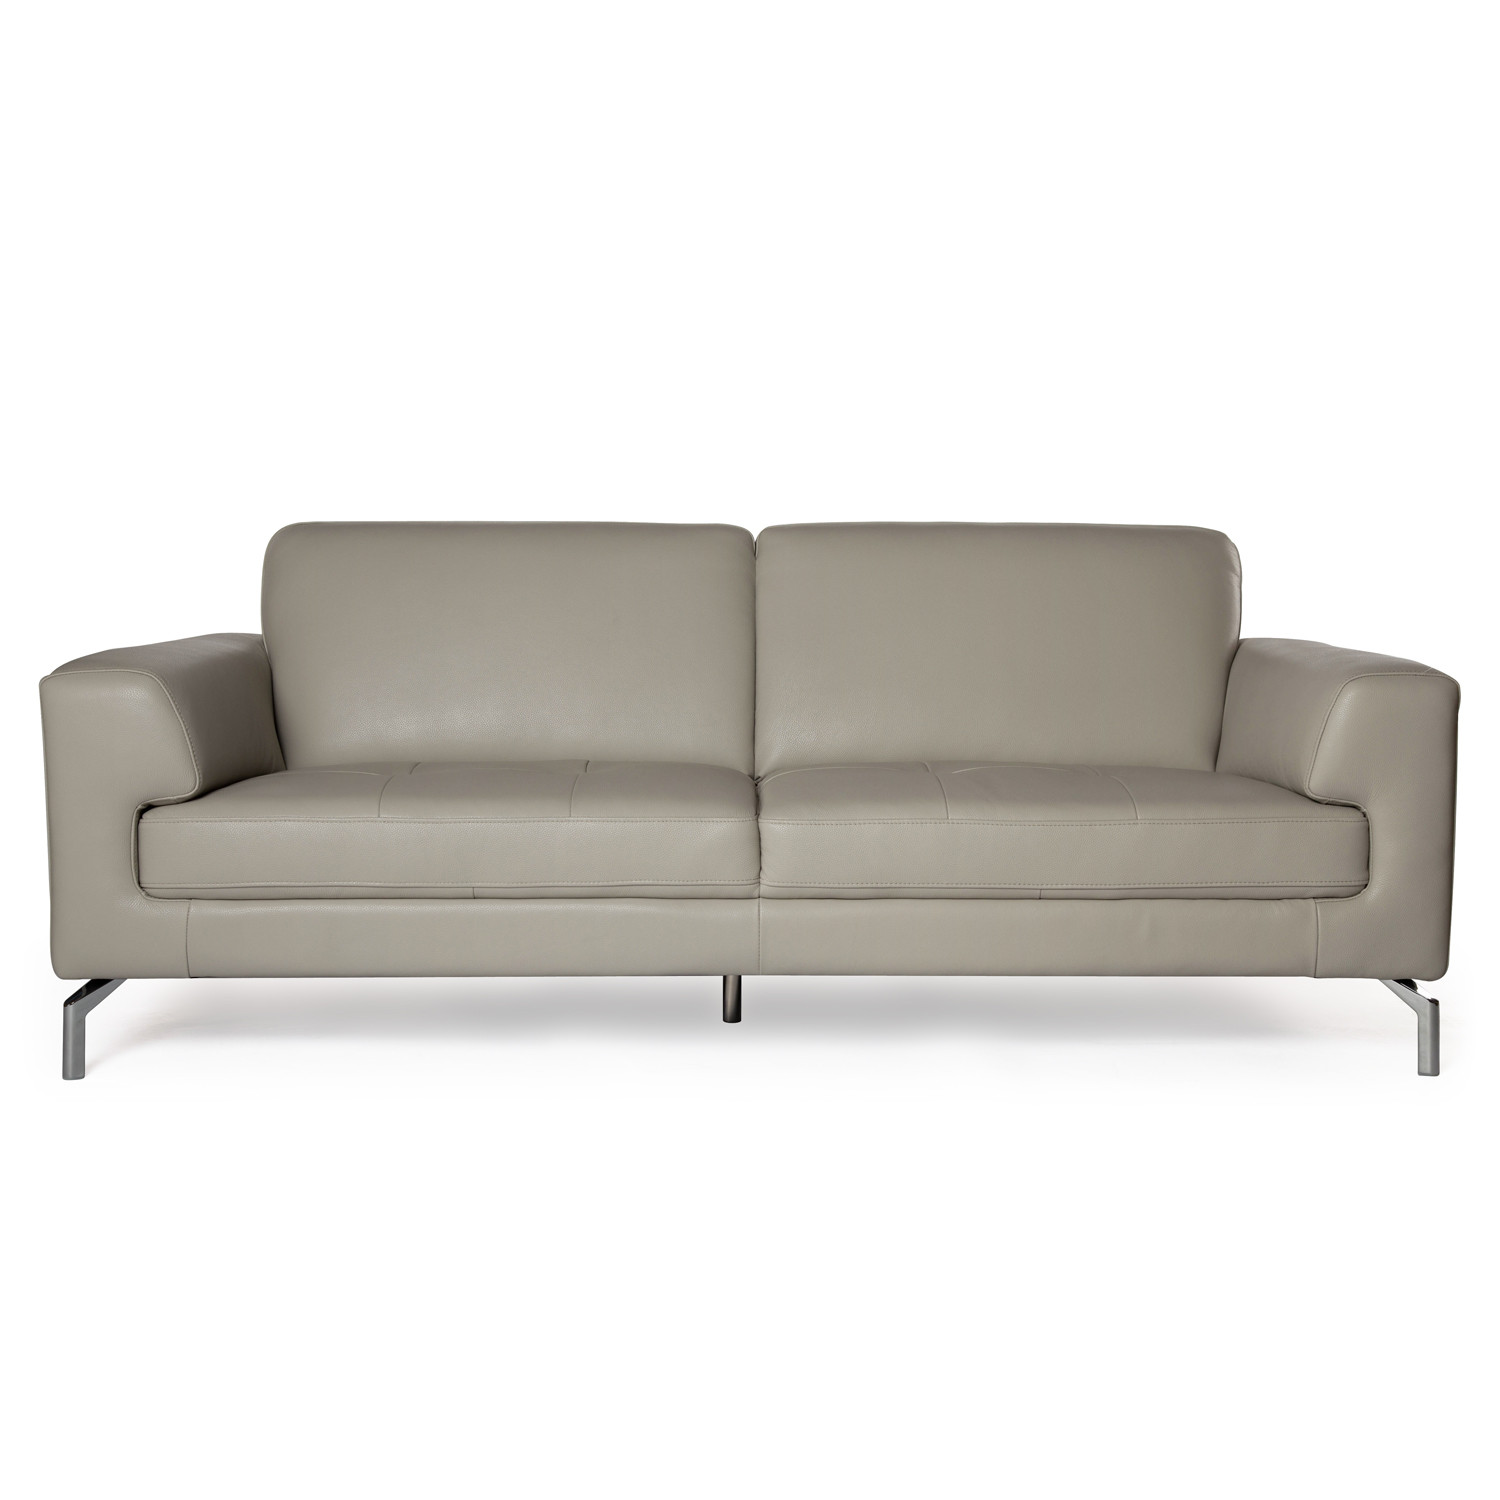 Best ideas about Light Gray Sofa . Save or Pin Light Grey Leather Sofa Valencia 3 Seater Taupe Grey H8587 Now.